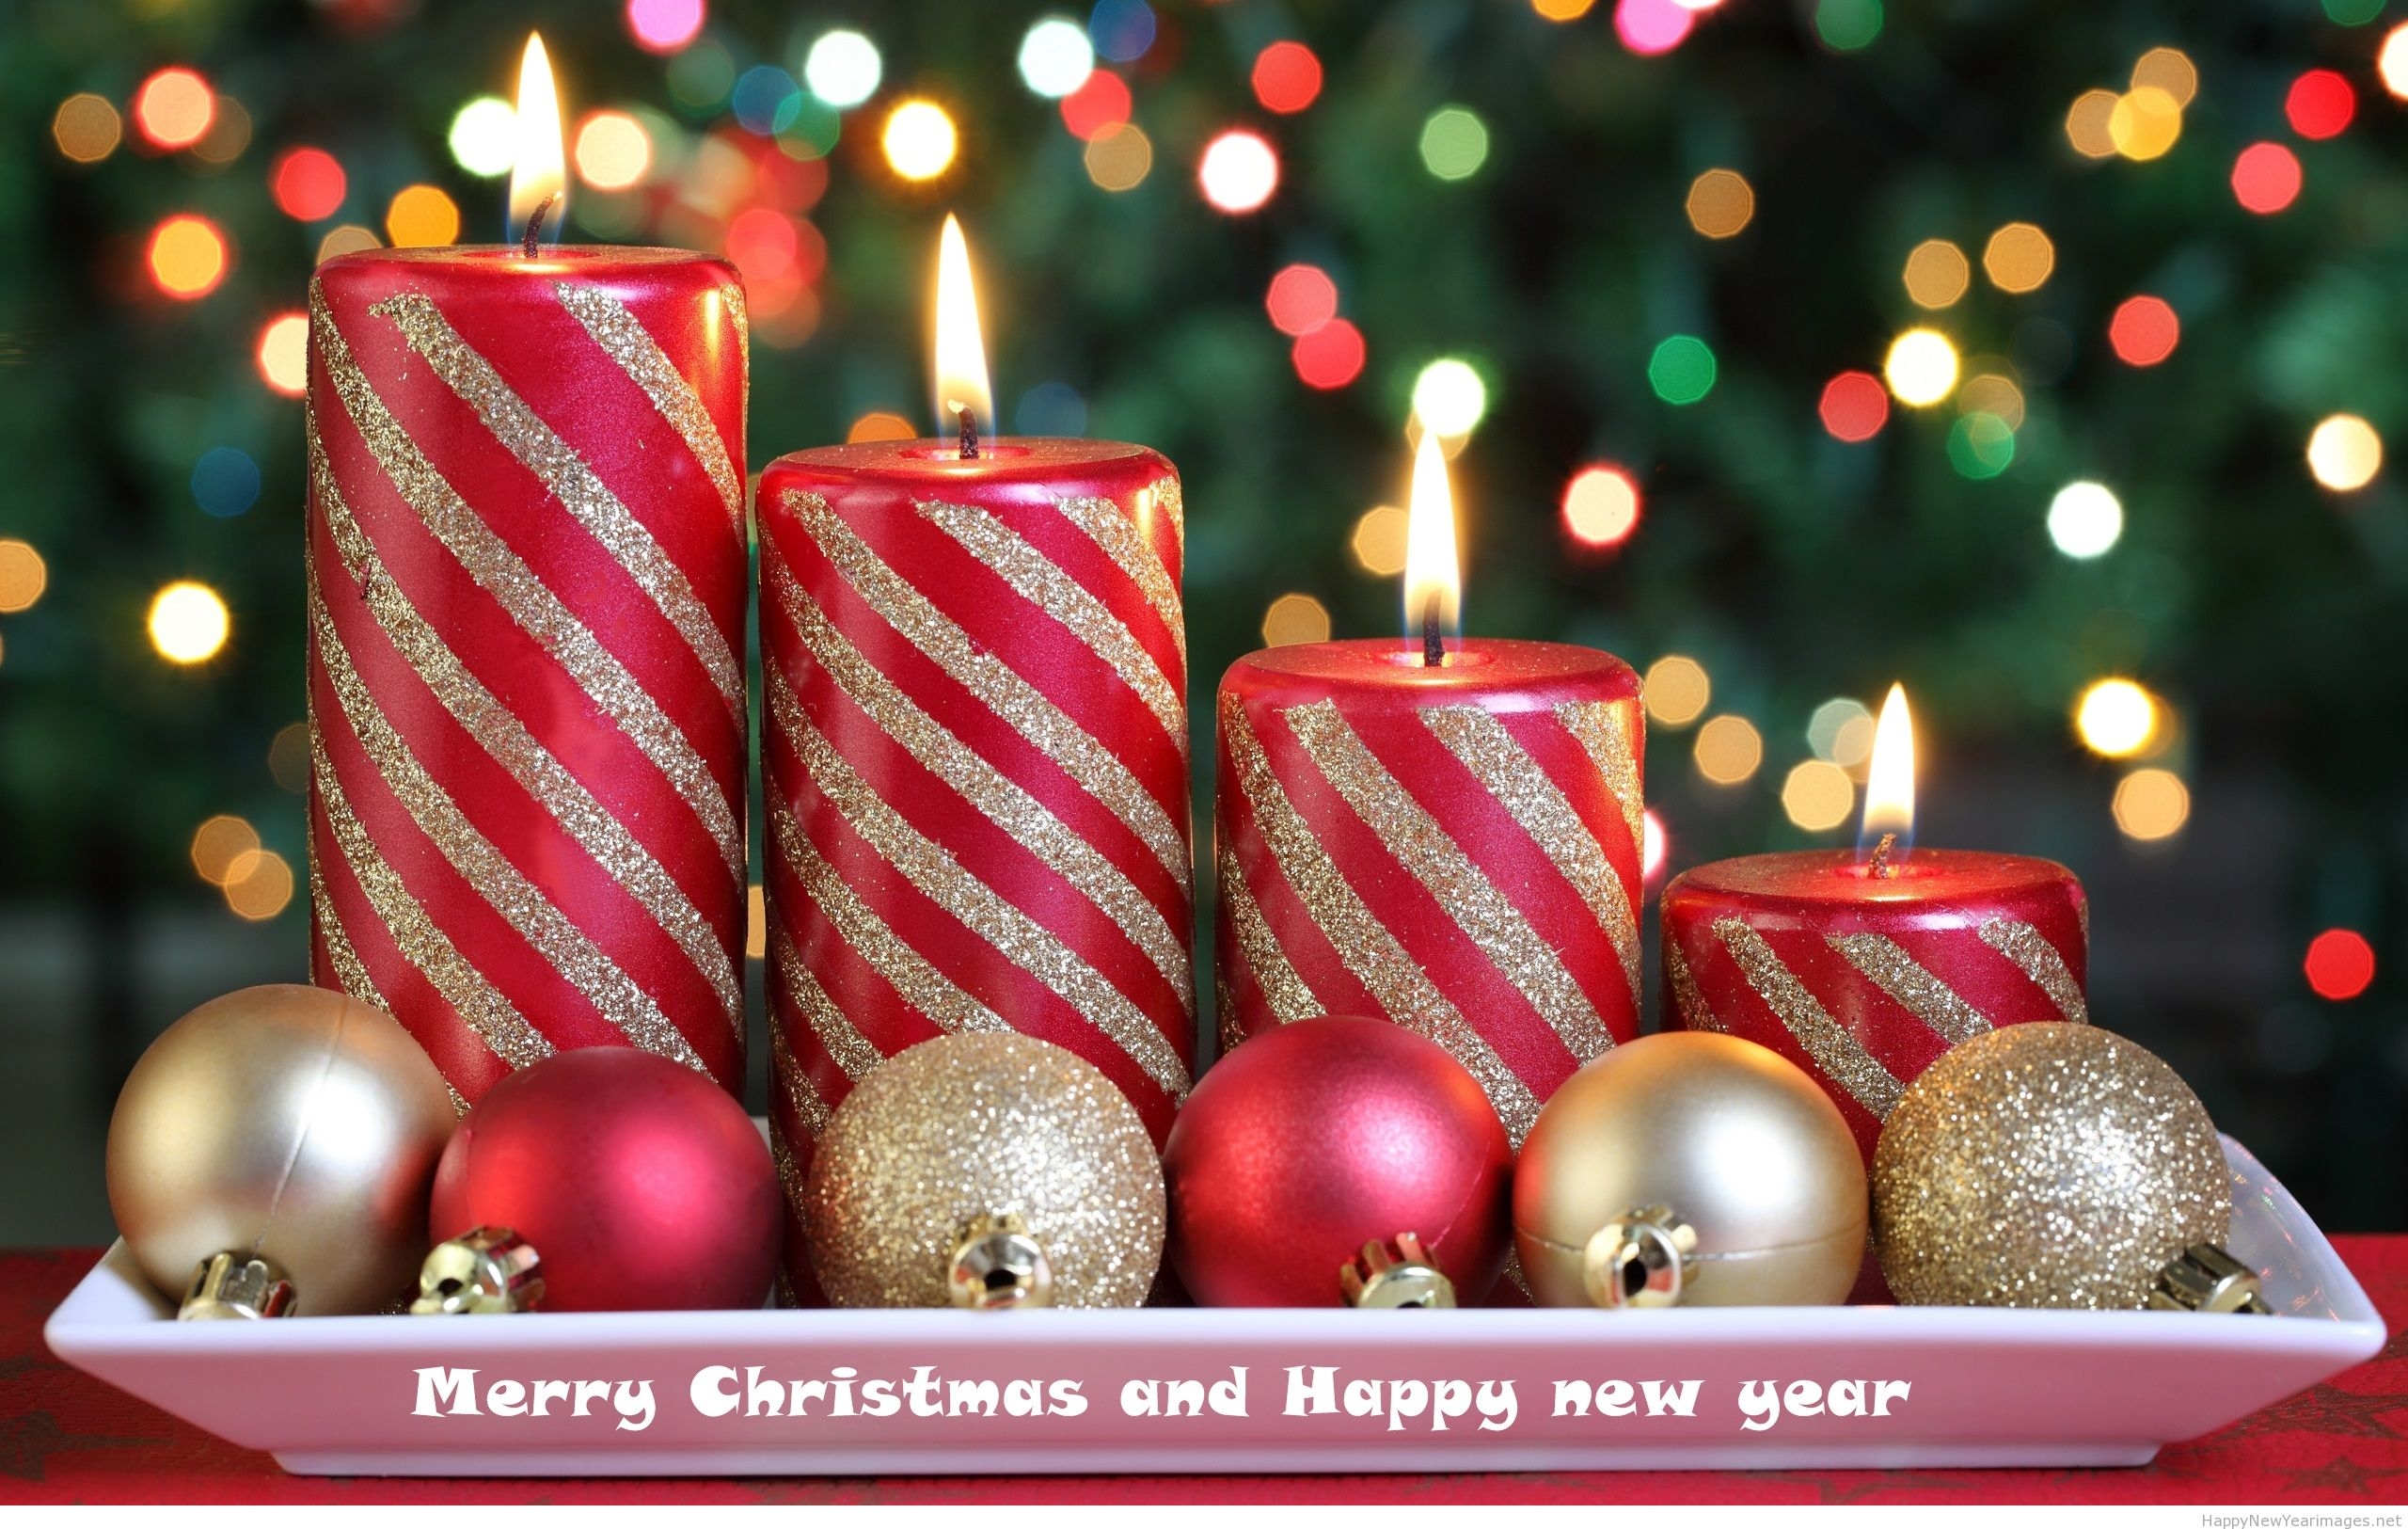 Merry christmas happy new year greetings hd m4hsunfo